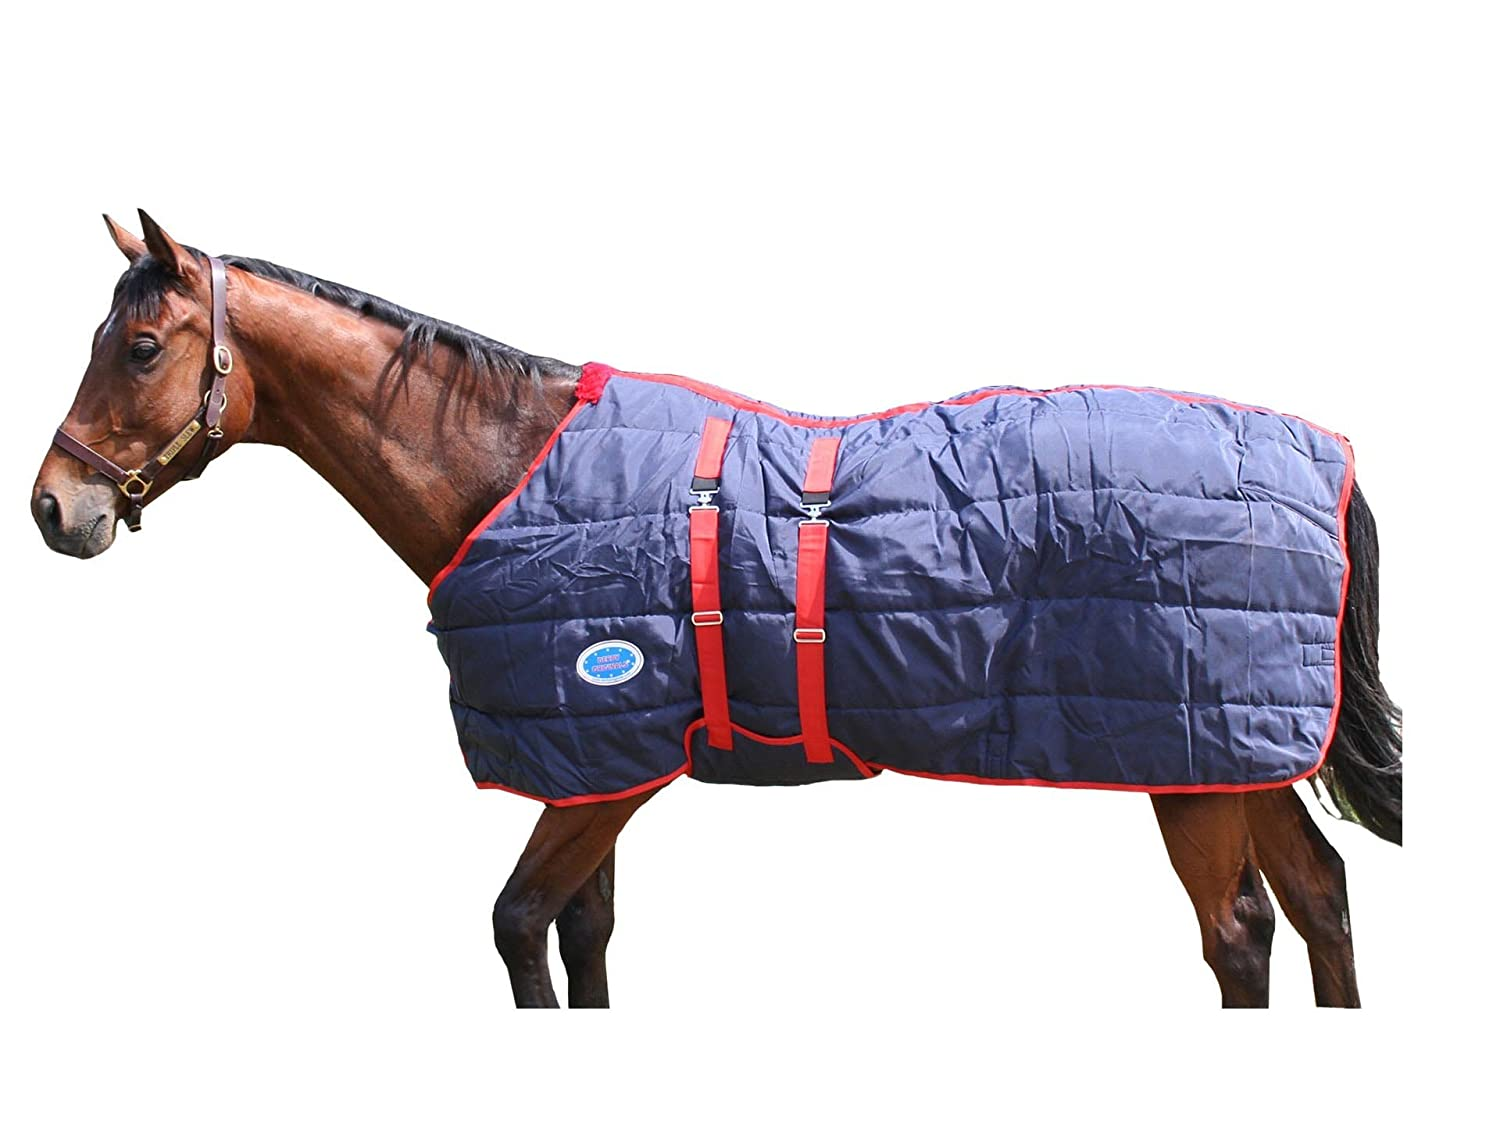 Derby Originals 1200D Nylon Horse Stable Blanket with Belly Wrap 300g Insulation Royal International